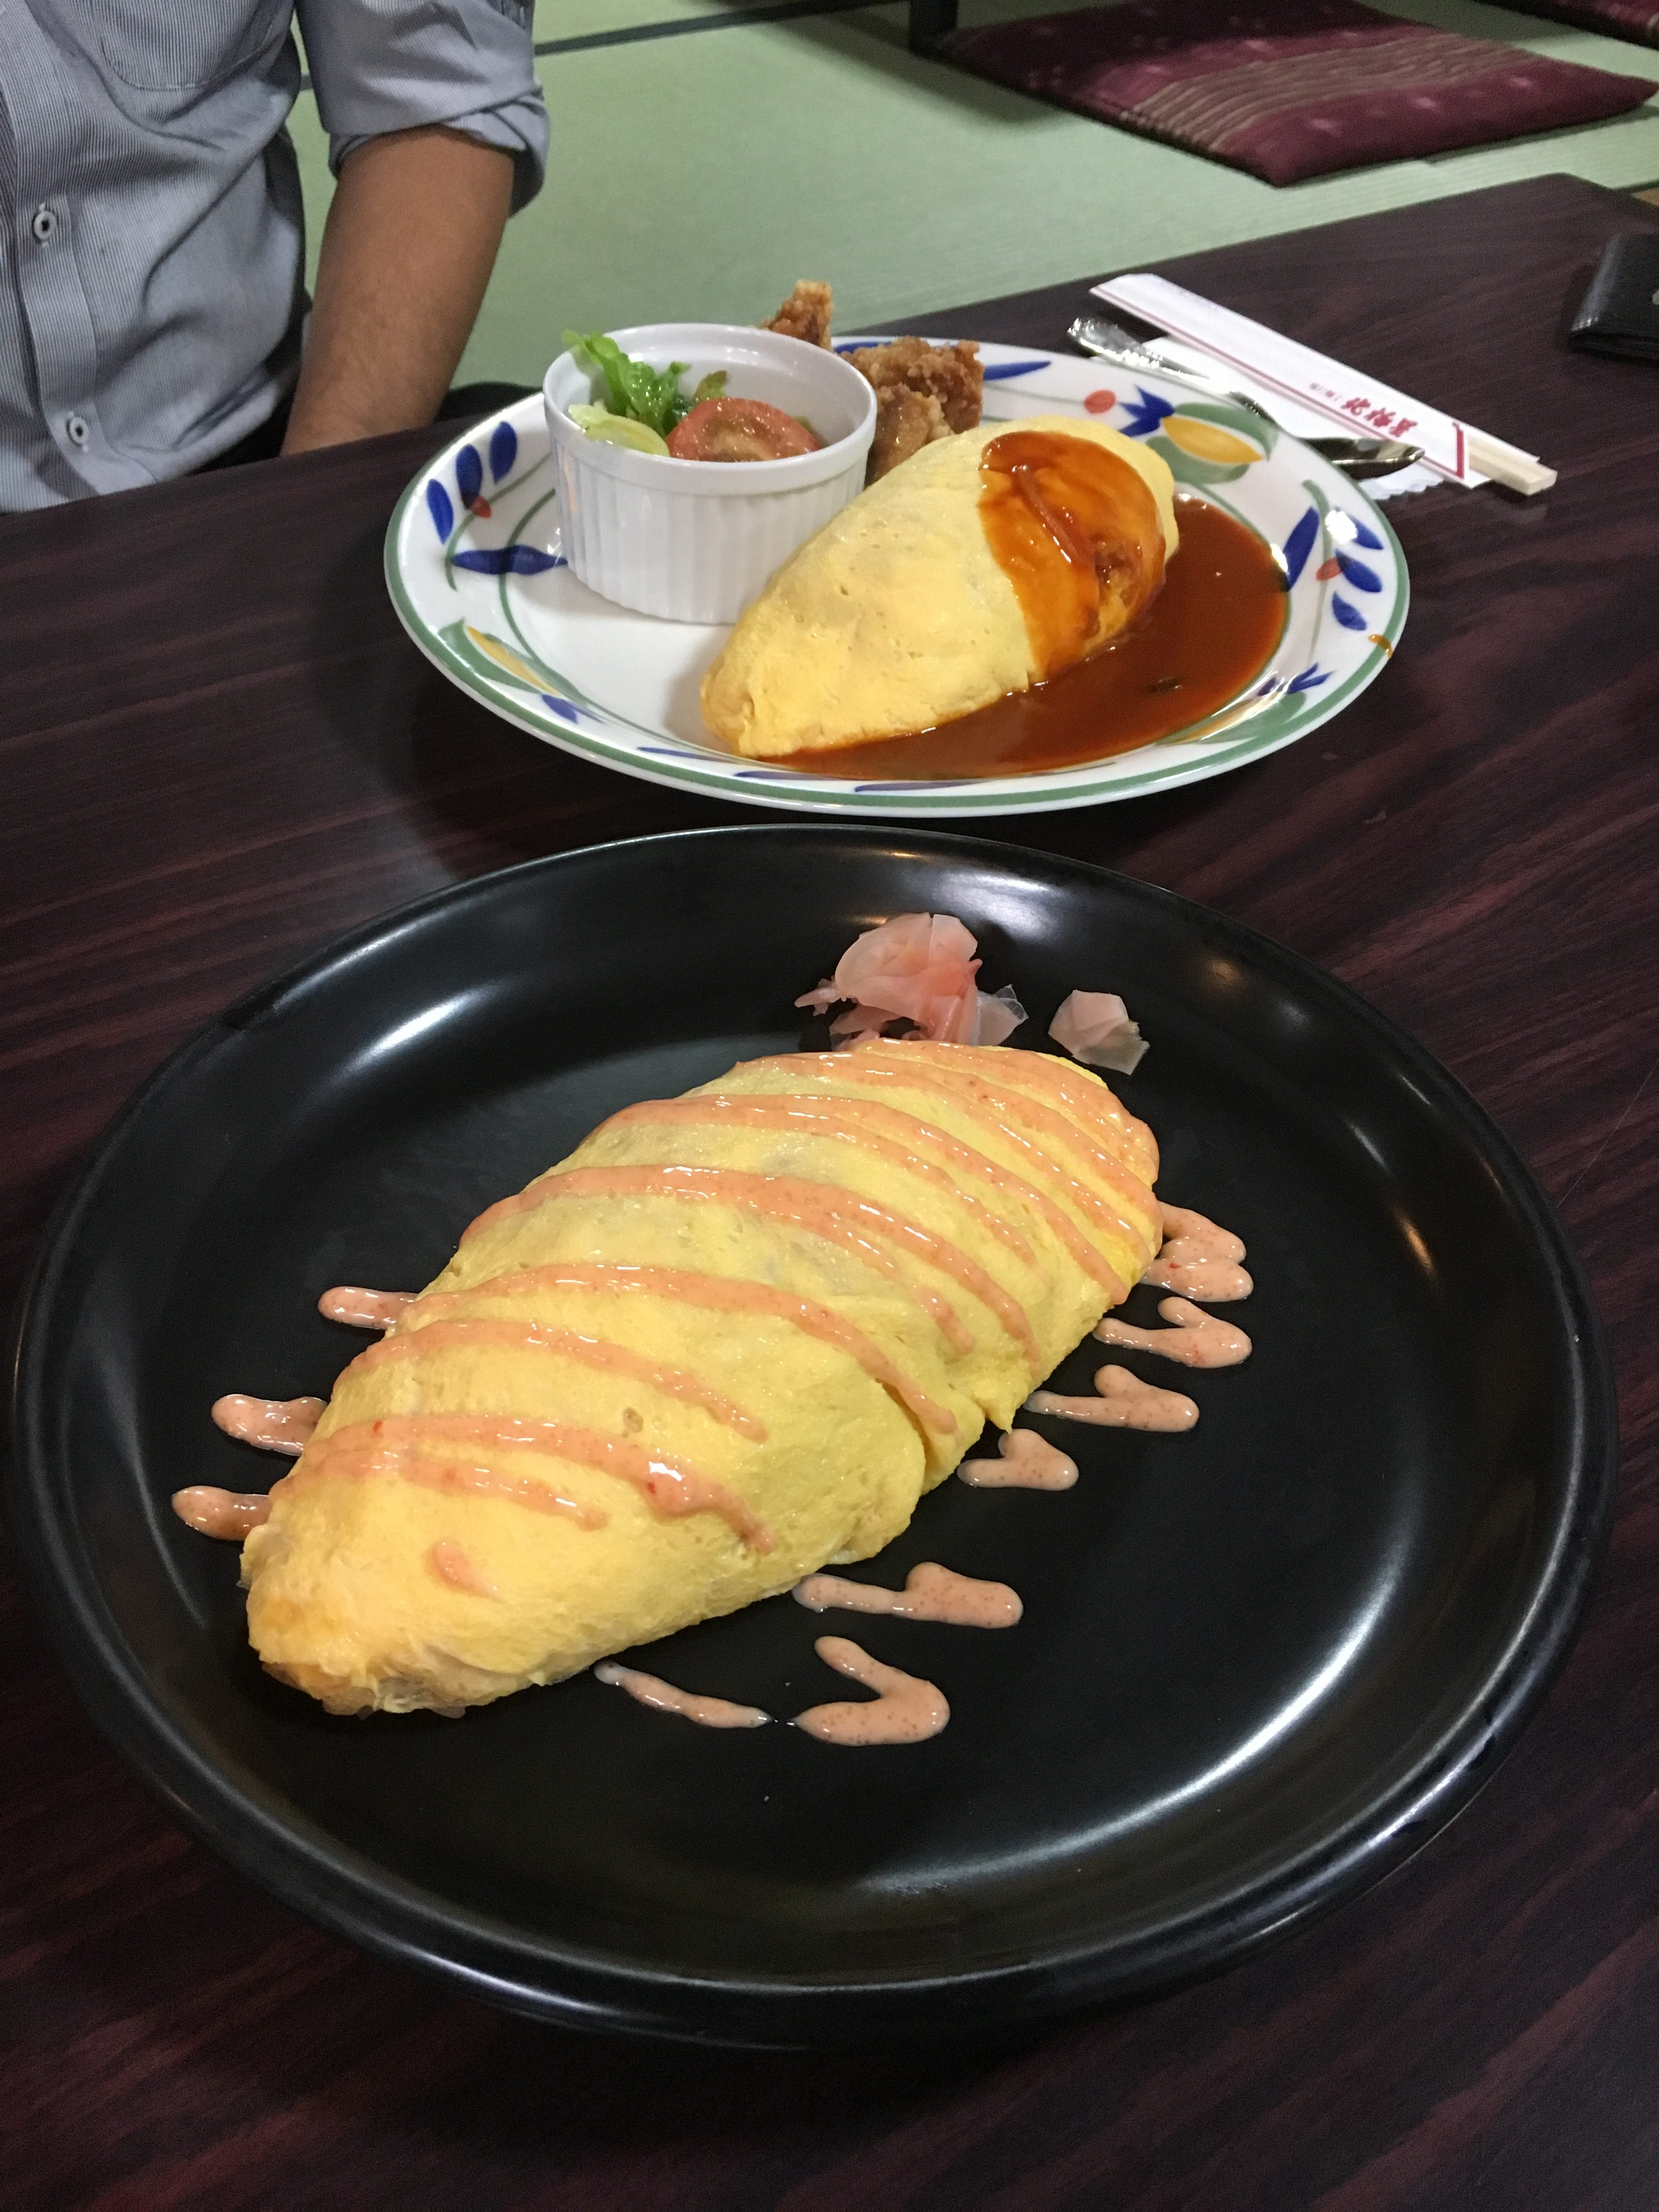 seafood omurice and regular omurice lunch sets with salad side dish